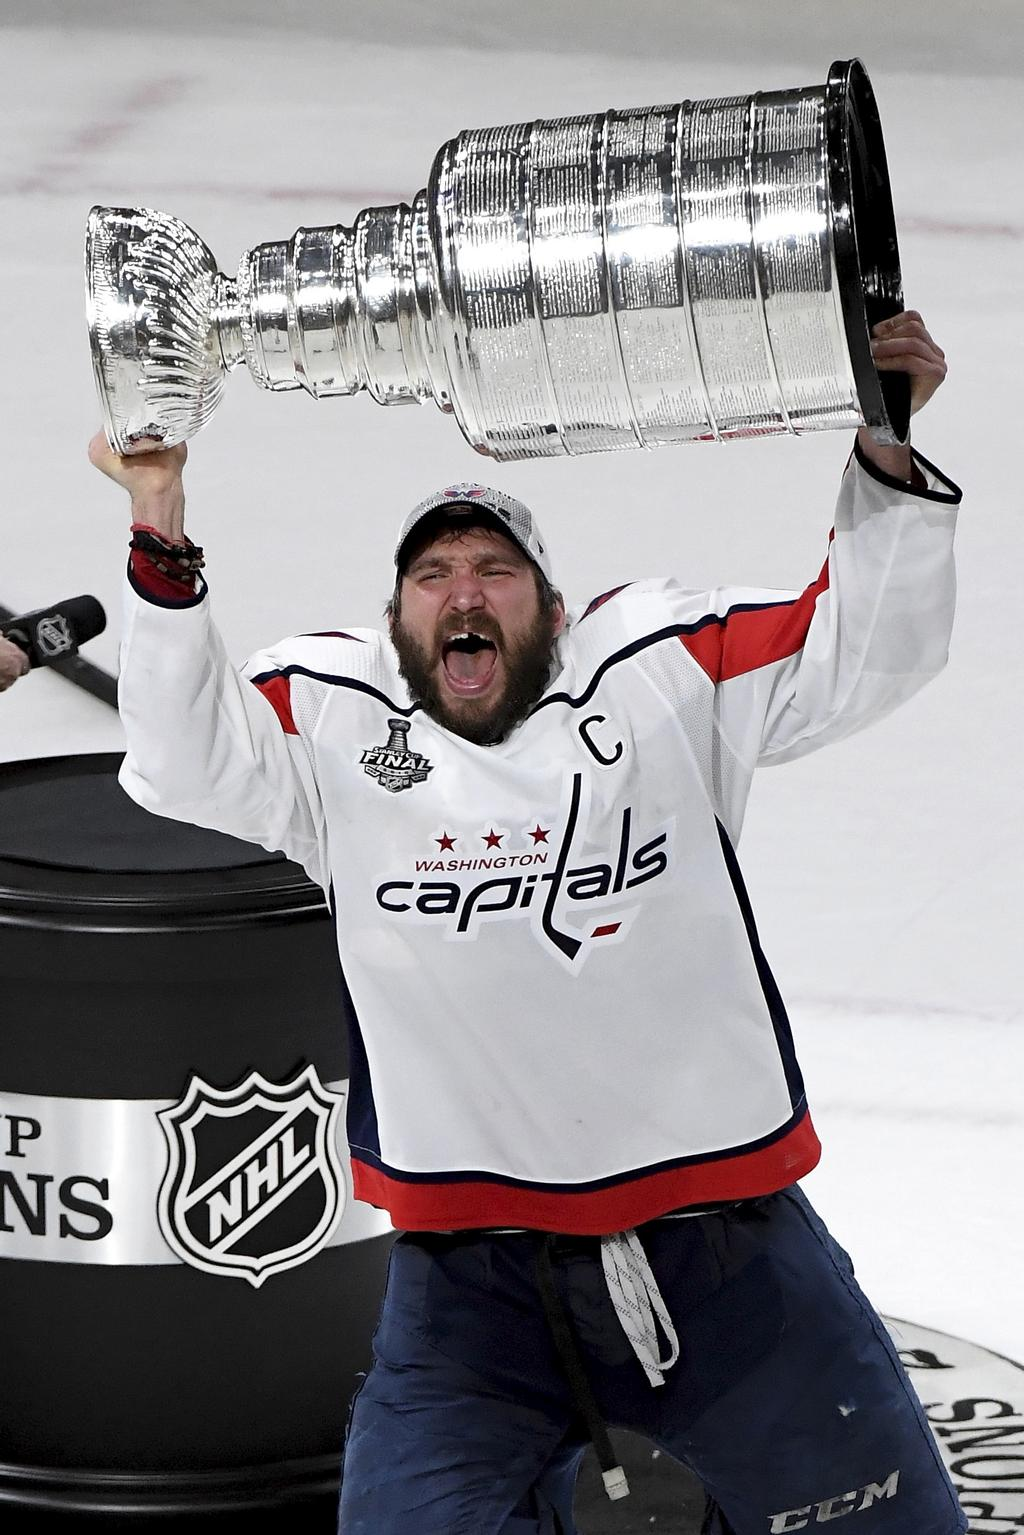 Les Capitals de Washington, et leur capitaine Alex Ovechkin (photo), sont les champions en titre de la Coupe Stanley.